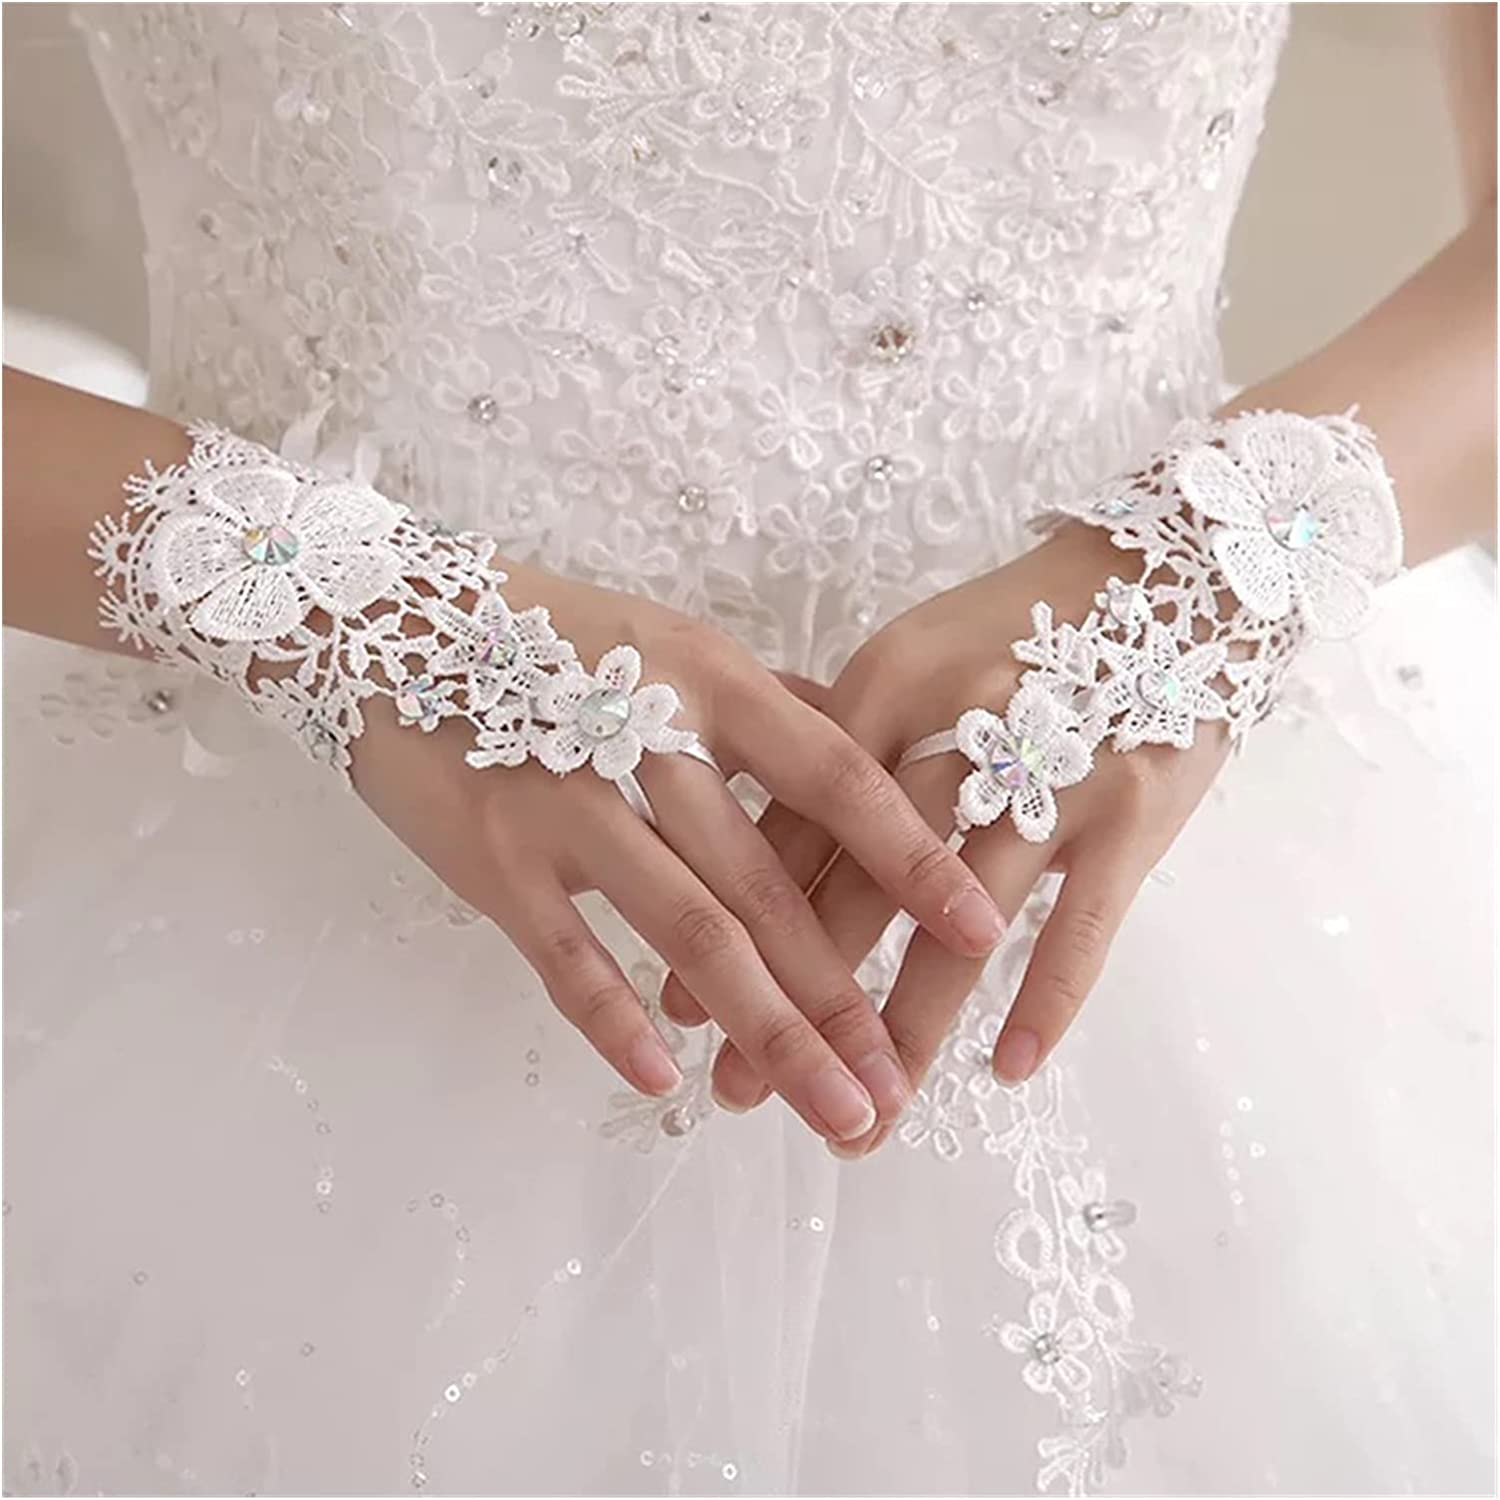 GUYANMAY Lace Gloves Elegant Lace Short White Fingerless Fashion Flower Girl Kid Child Student Party Performance Dancing Wedding Gloves (Color : White)